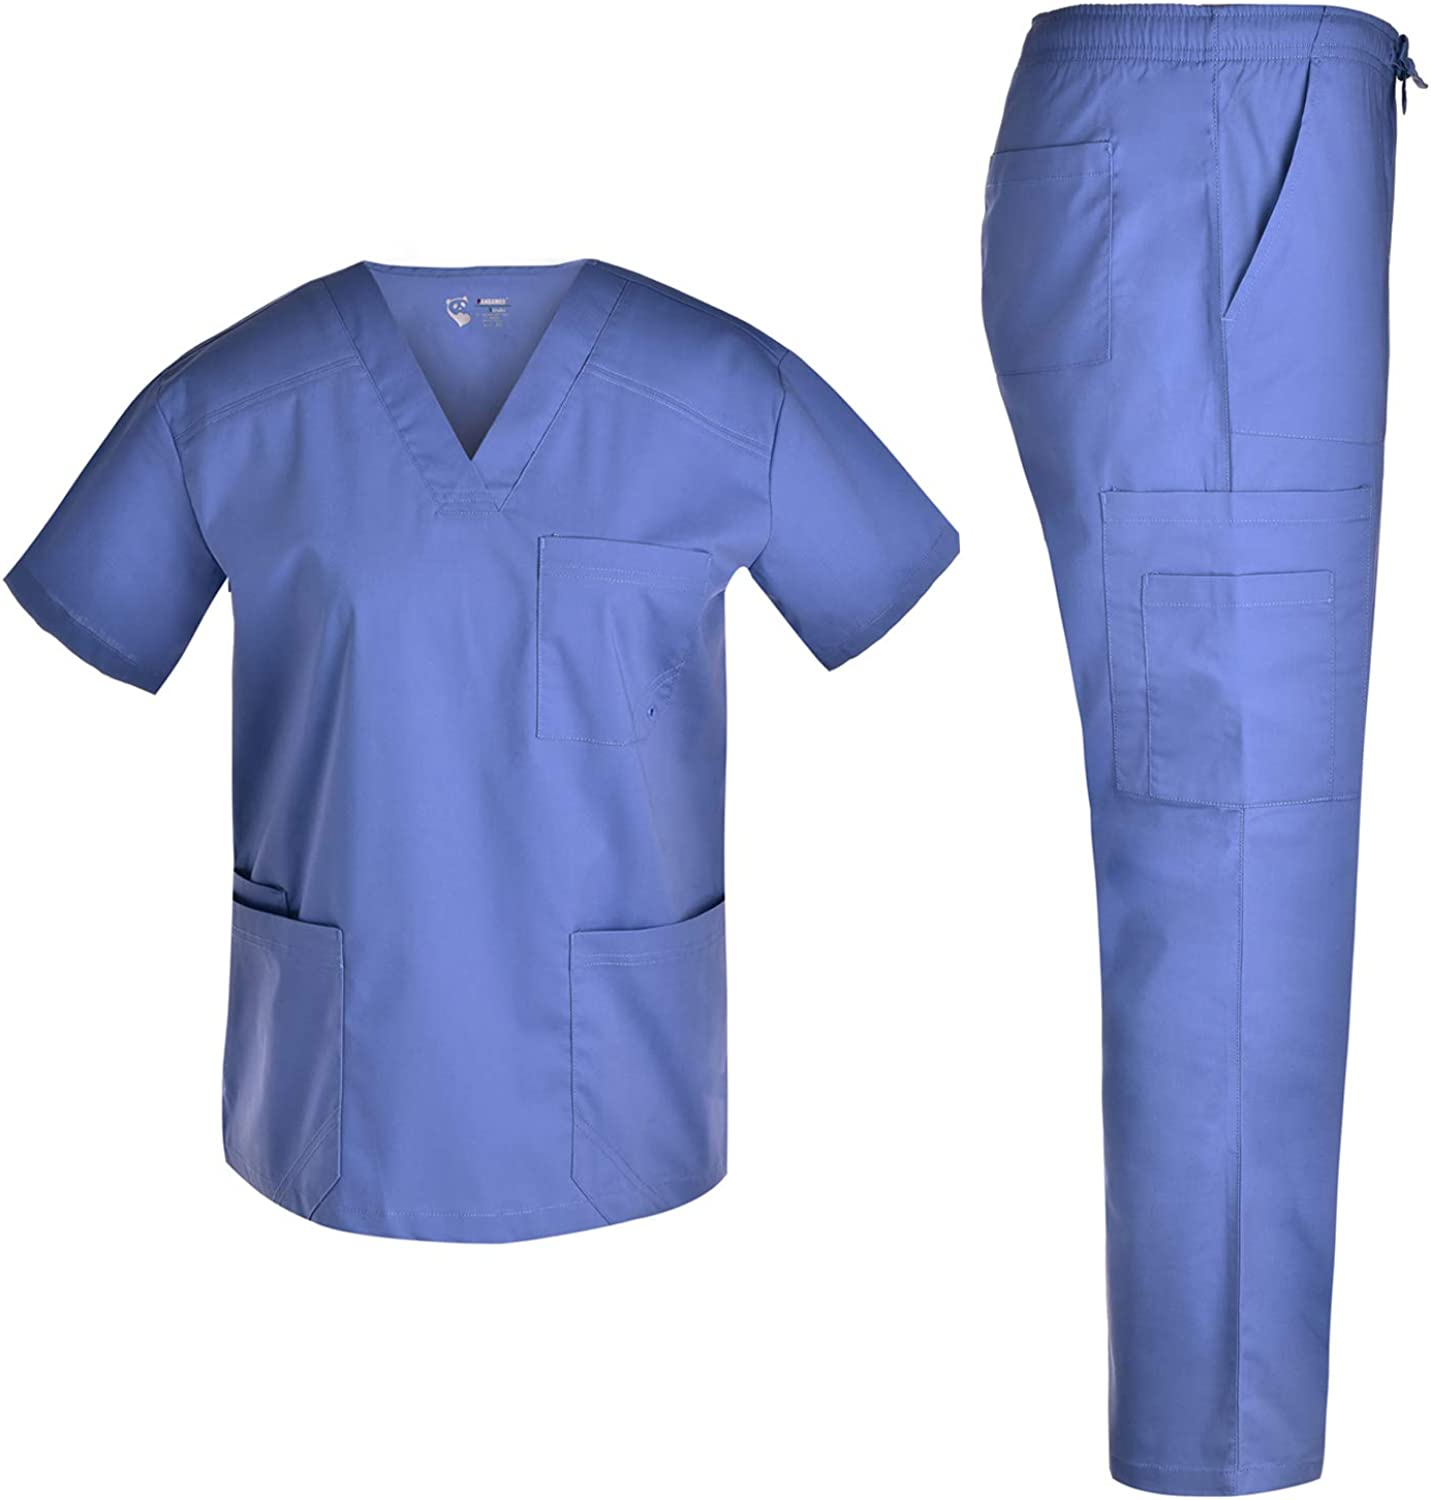 Fashion Oakland Mall Men Stretch V Neck In stock Set - for Top Workwear an Spandex